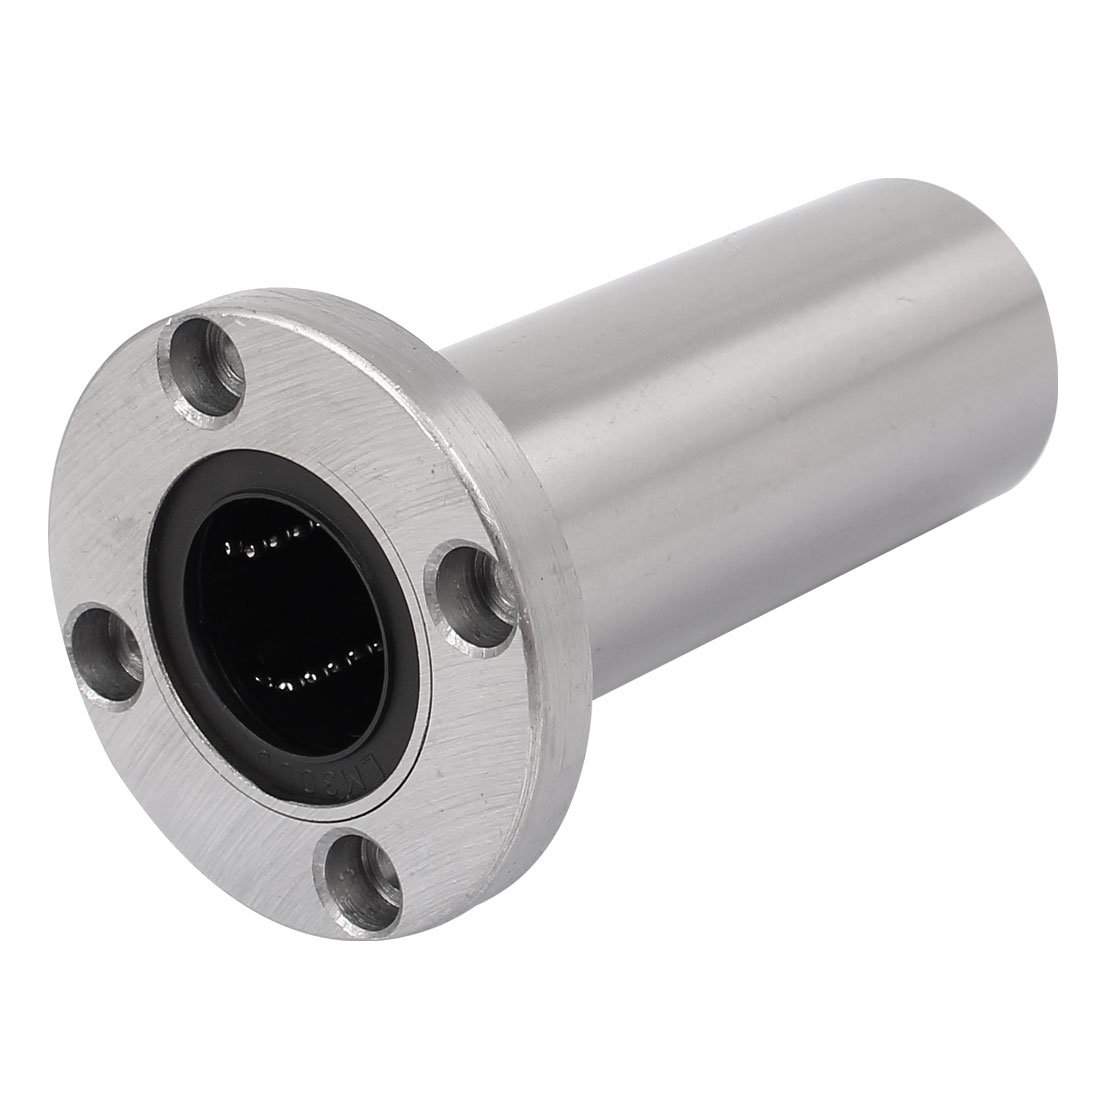 LMF30LUU 30mm Inner Dia Round Flange Type Linear Motion